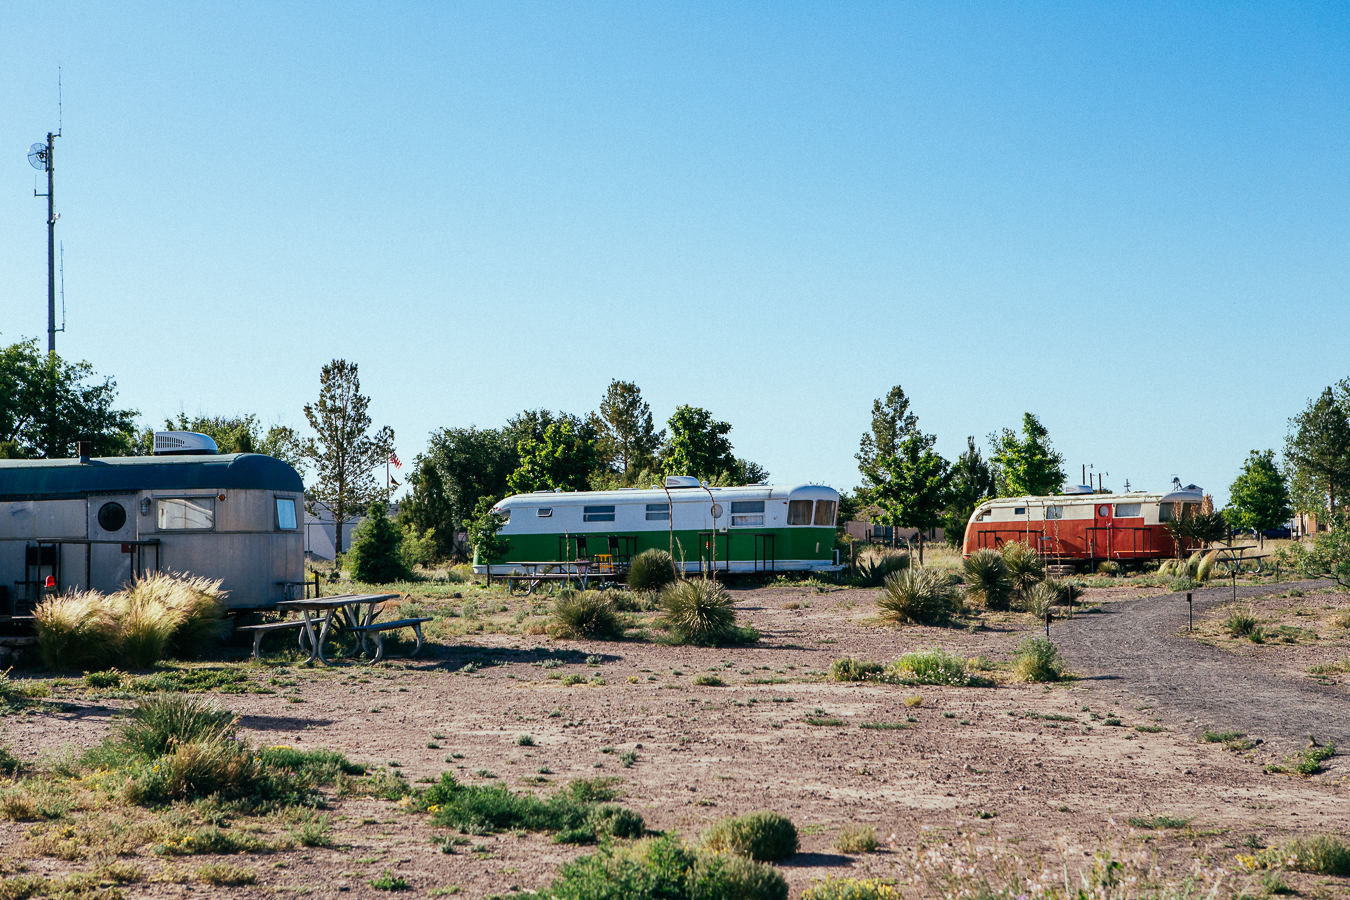 """Everybody was telling me I had to visit Marfa saying howcool it was. Maybe on a holiday, but this place was really lacklusterwhen I came through.The only interestingthing was this """"motel"""" that isa bunch of rad old trailers and teepees to camp in."""